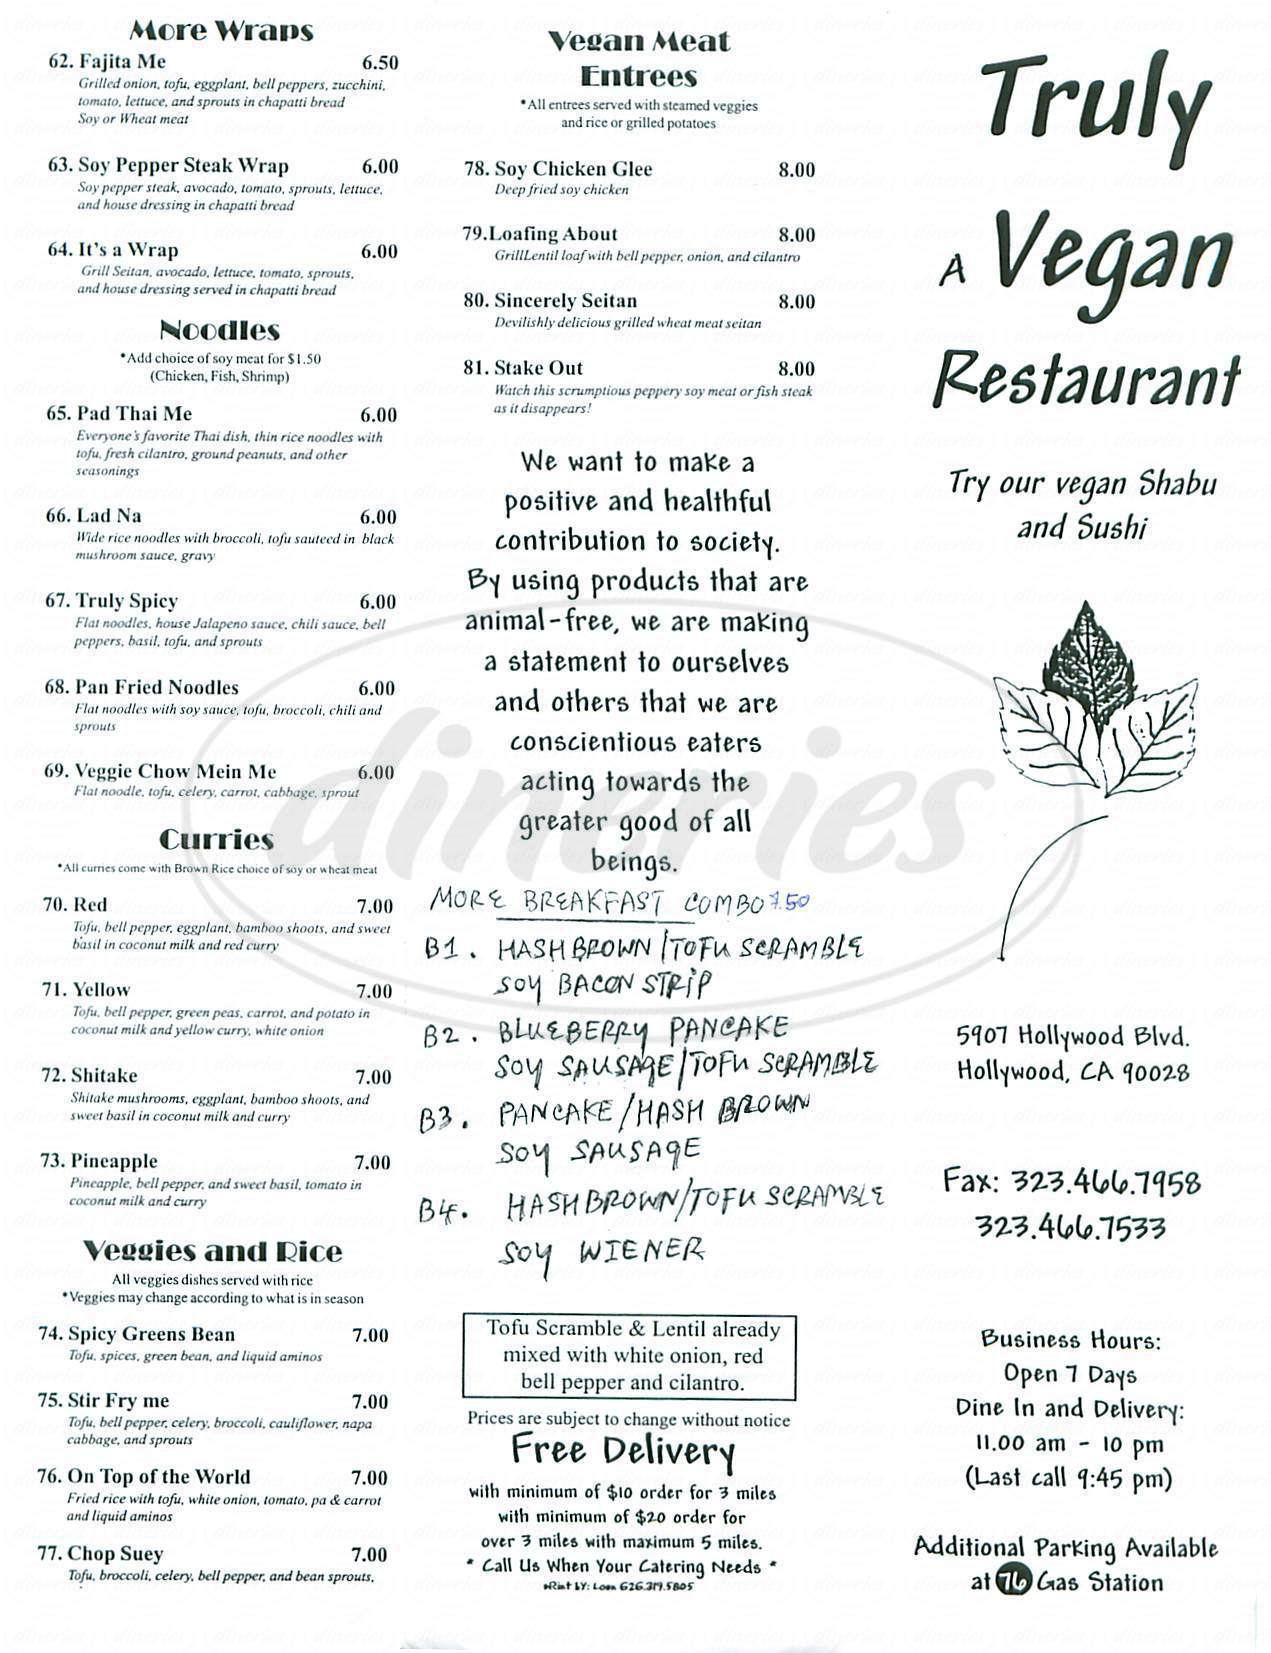 menu for Truly Vegan Restaurant